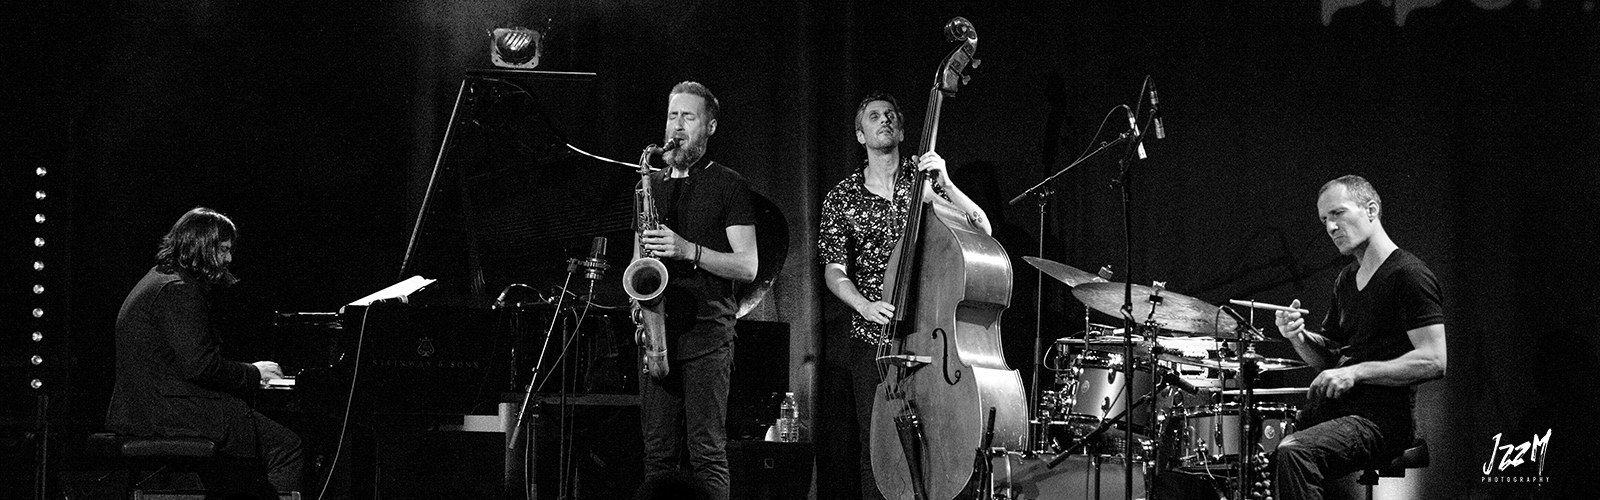 Jean-Pierre Como « Infinite » au Pan Piper le 21/05/2019